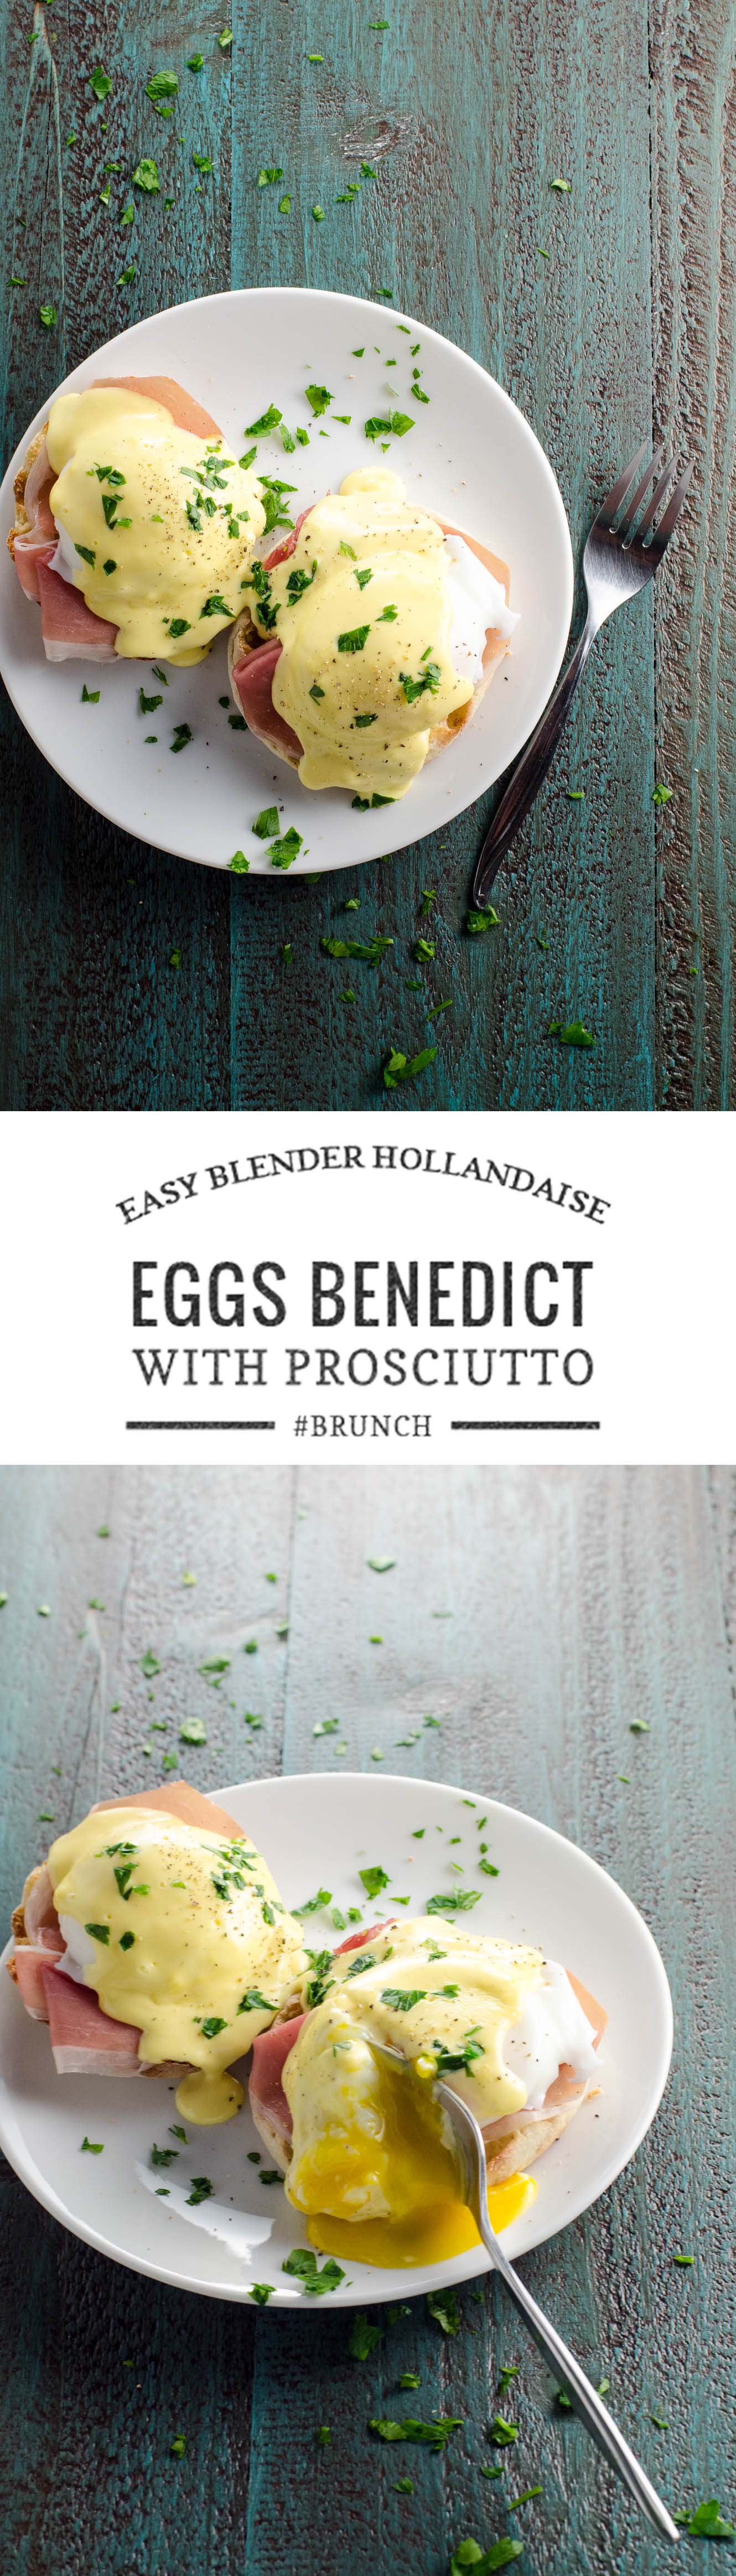 Prosciutto eggs Benedict is an easy and classy twist on the traditional recipe. 5-minute, 5-ingredient blender Hollandaise brings it together in a flash.